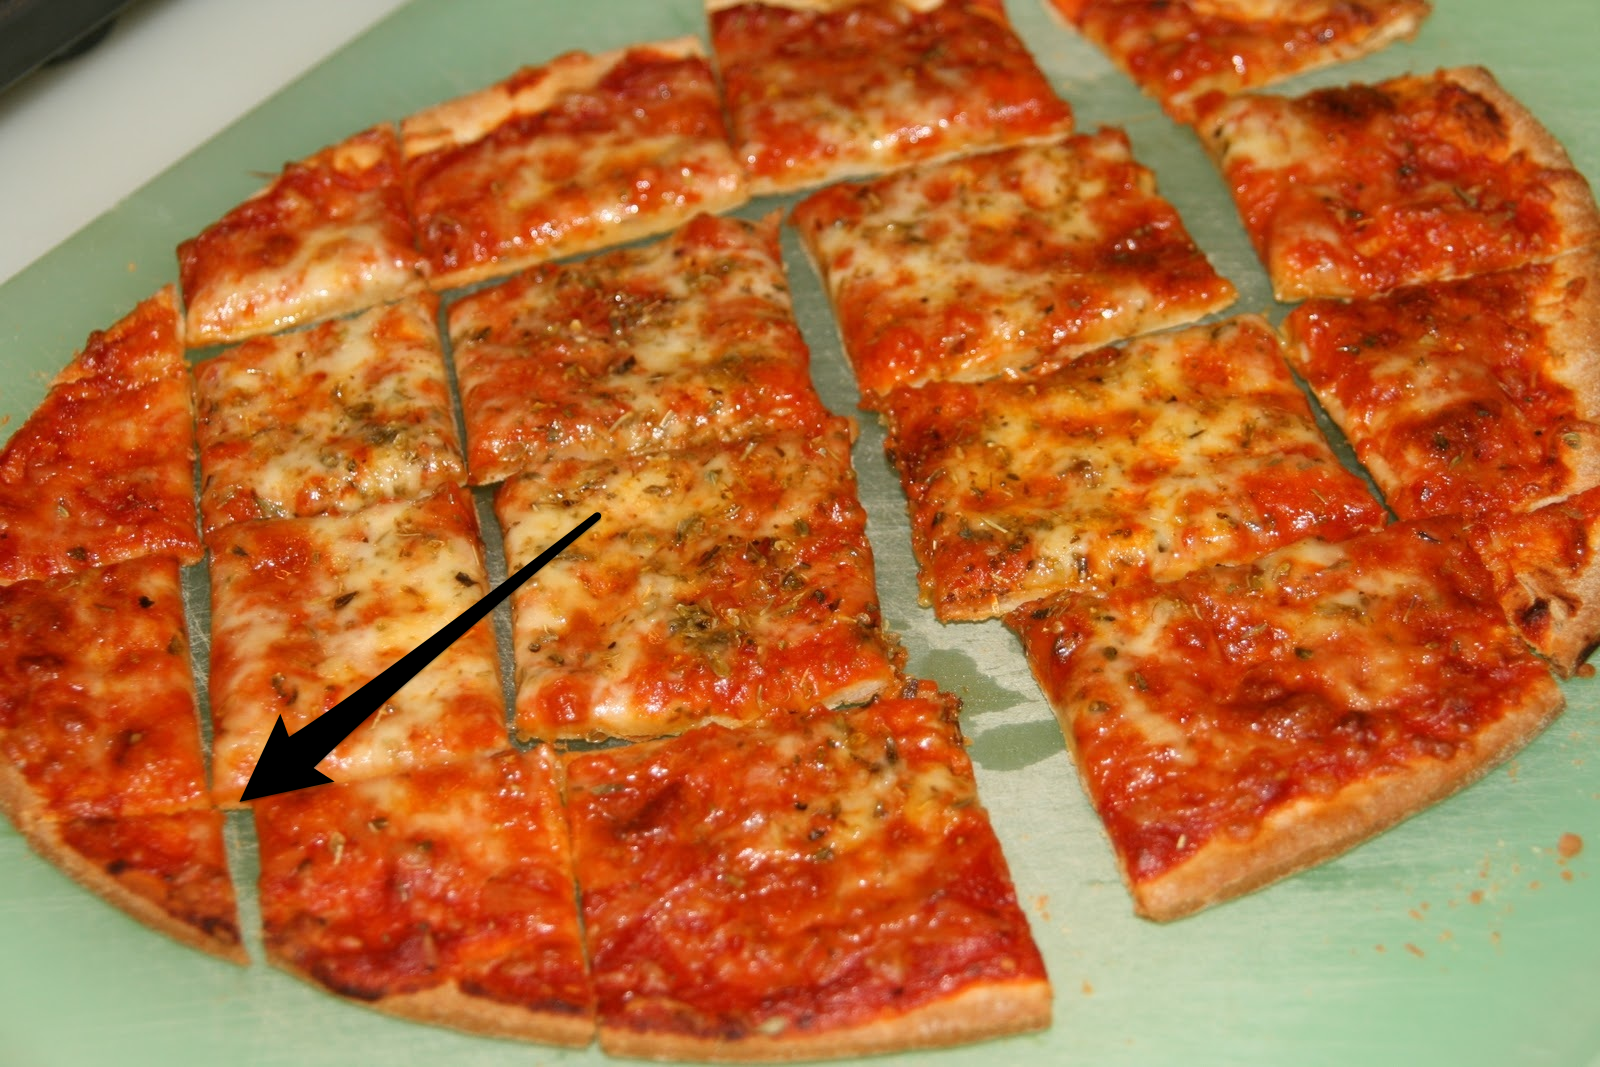 6 Reasons Square Cut Pizza is the Best Cut Pizza - Encyclopizzeria on vintage pizza, sbarro cheese pizza, philadelphia cream cheese veggie pizza, california pizza kitchen cheese pizza, german style pizza, arugula pizza, totino's cheese pizza, butternut squash goat cheese pizza, culinary circle pizza,